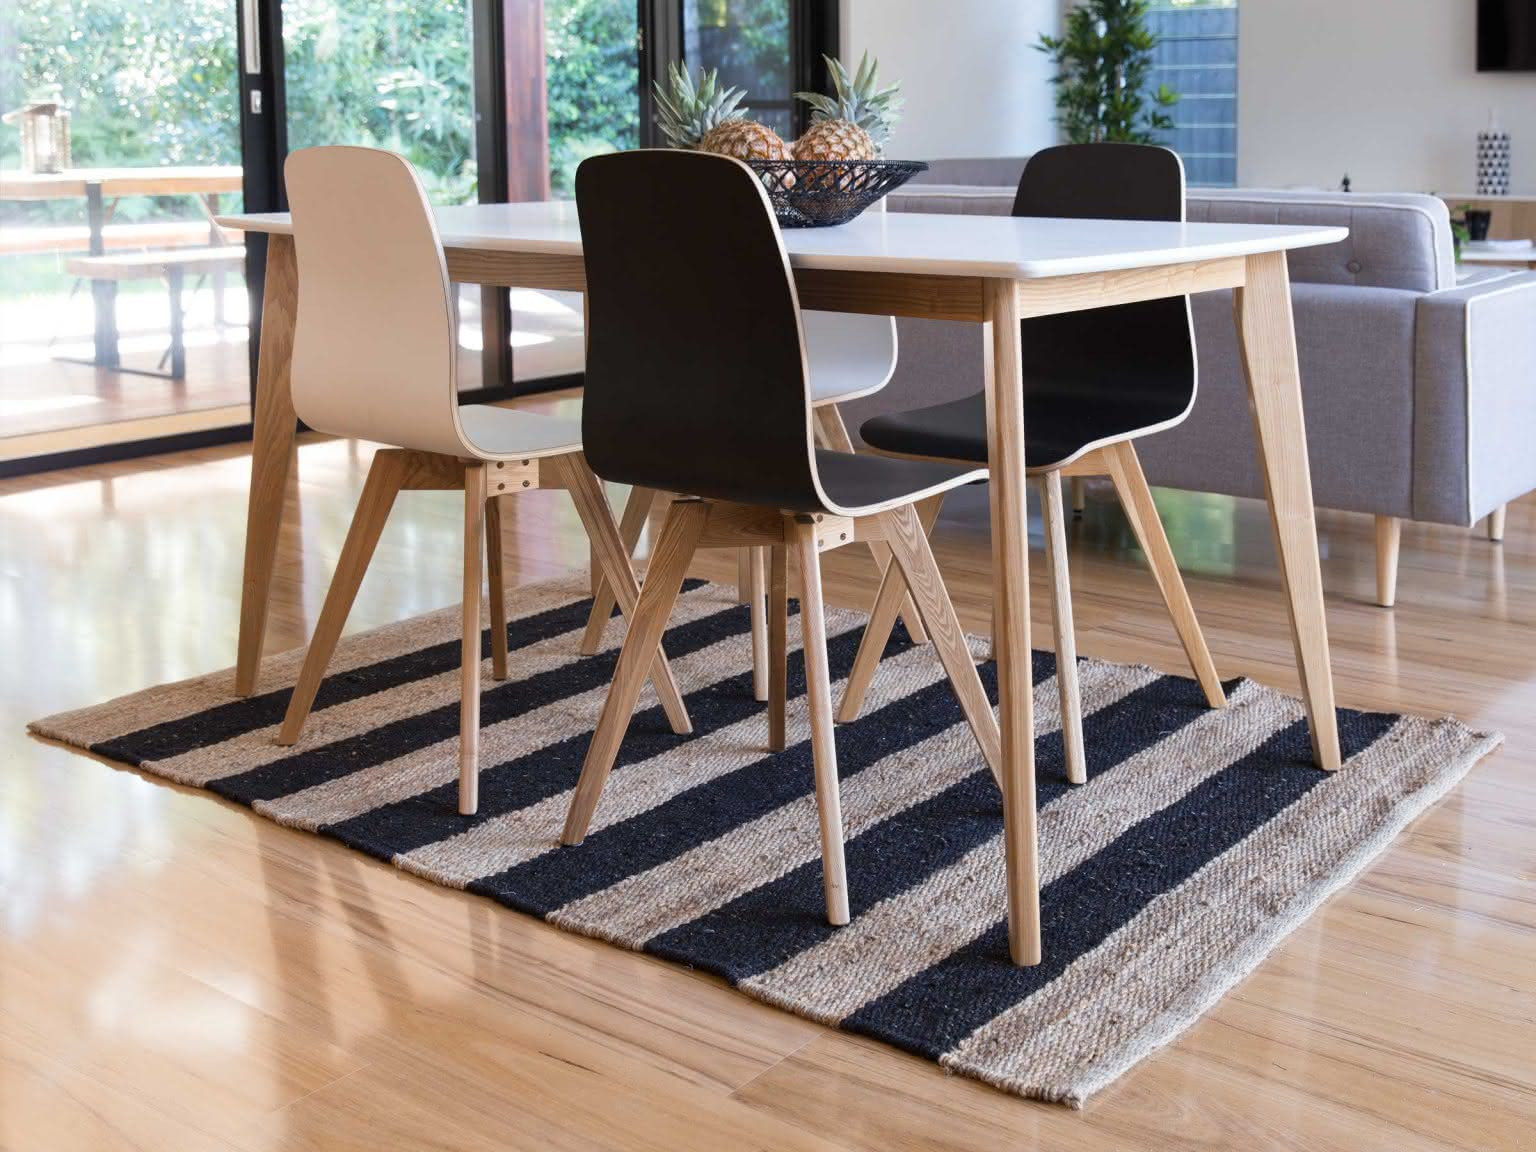 Best Hardwood Floors for Resale Value Of Mocka Rec Rug Living Decor Shop now within Rec Rug Black